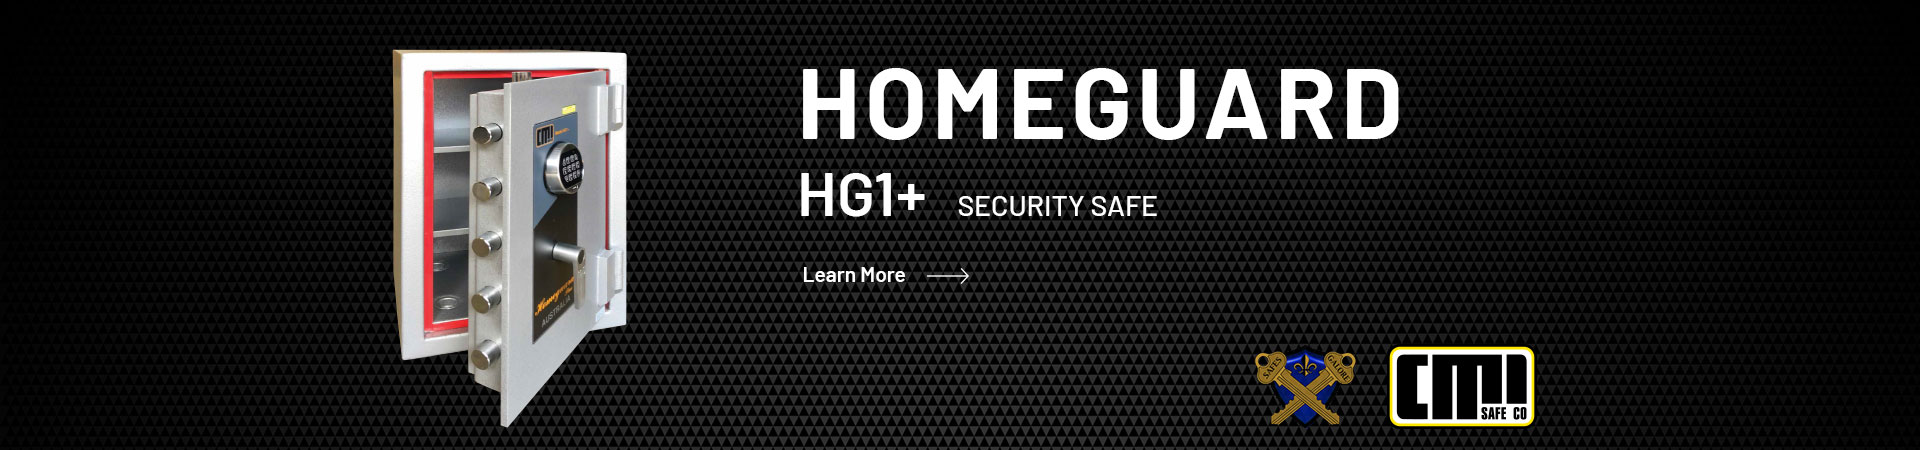 View the Homeguard Plus 1 Home Office Safe